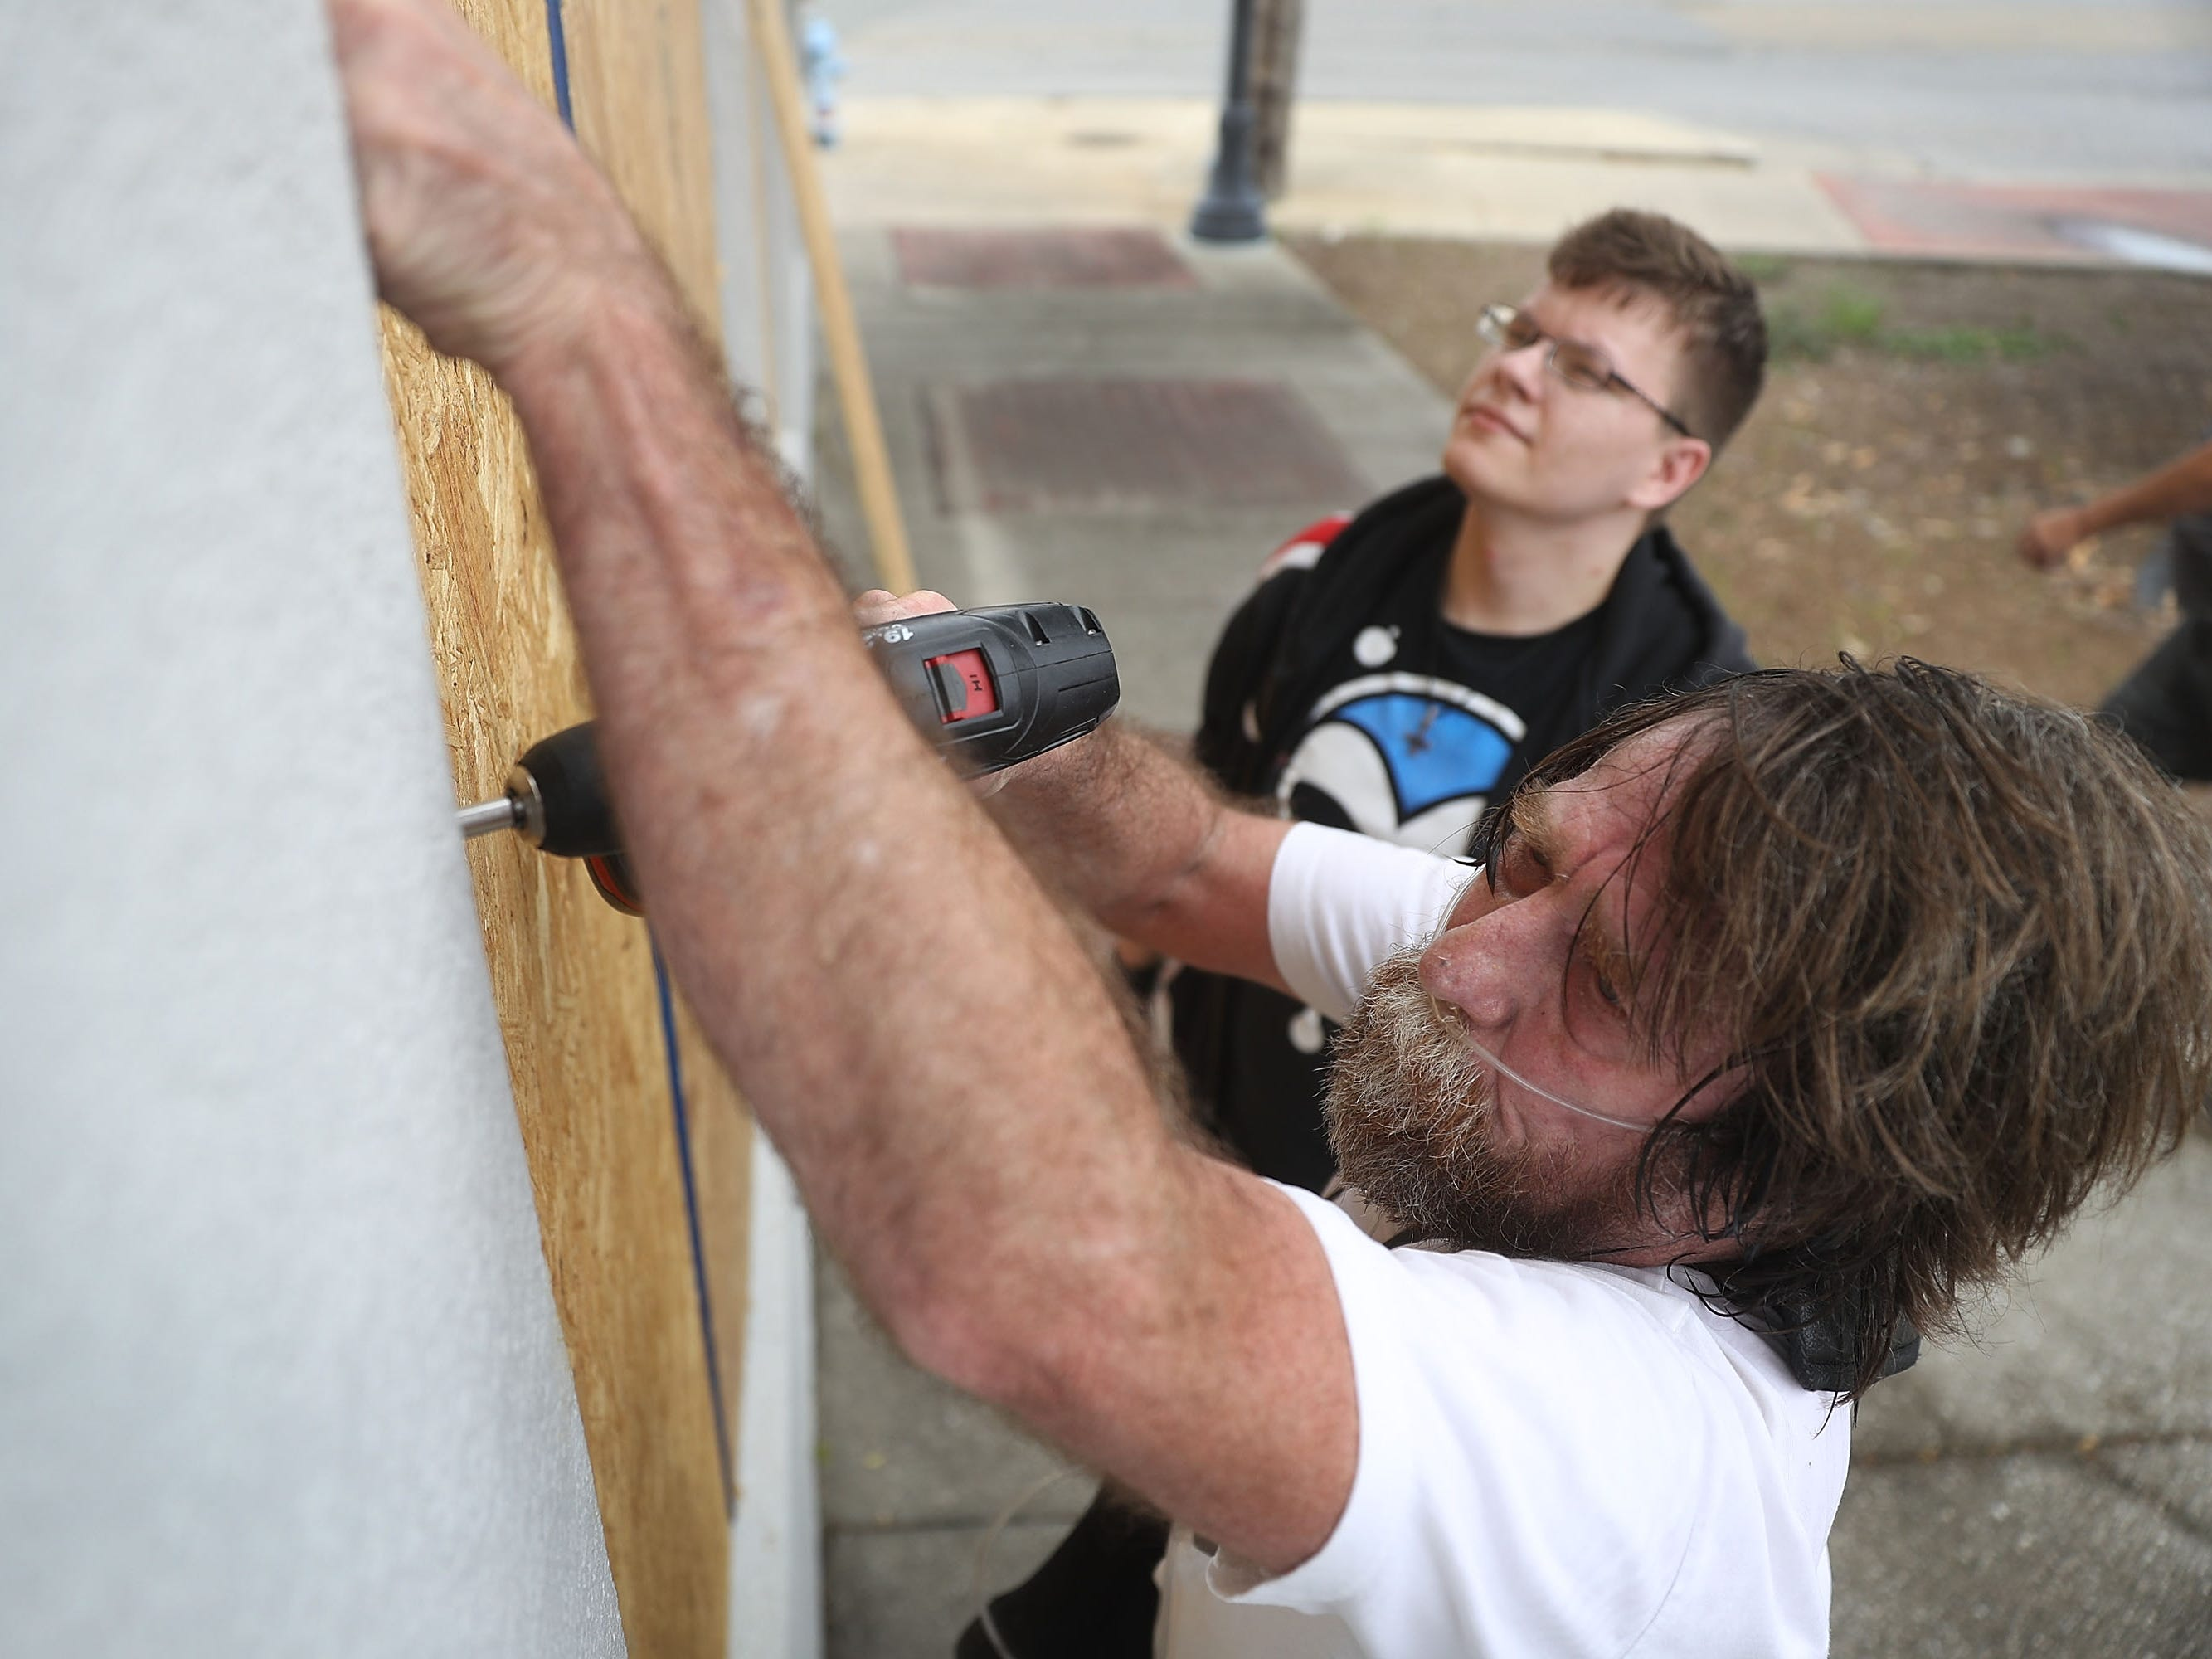 PORT ST. JOE, FL - OCTOBER 09:  Al Smith and Paul Potts (L-R) put plywood over the windows of a building as they prepare it for the arrival of Hurricane Michael on October 9, 2018 in Port St. Joe, Florida. The hurricane is forecast to hit the Florida Panhandle at a possible category 3 storm.